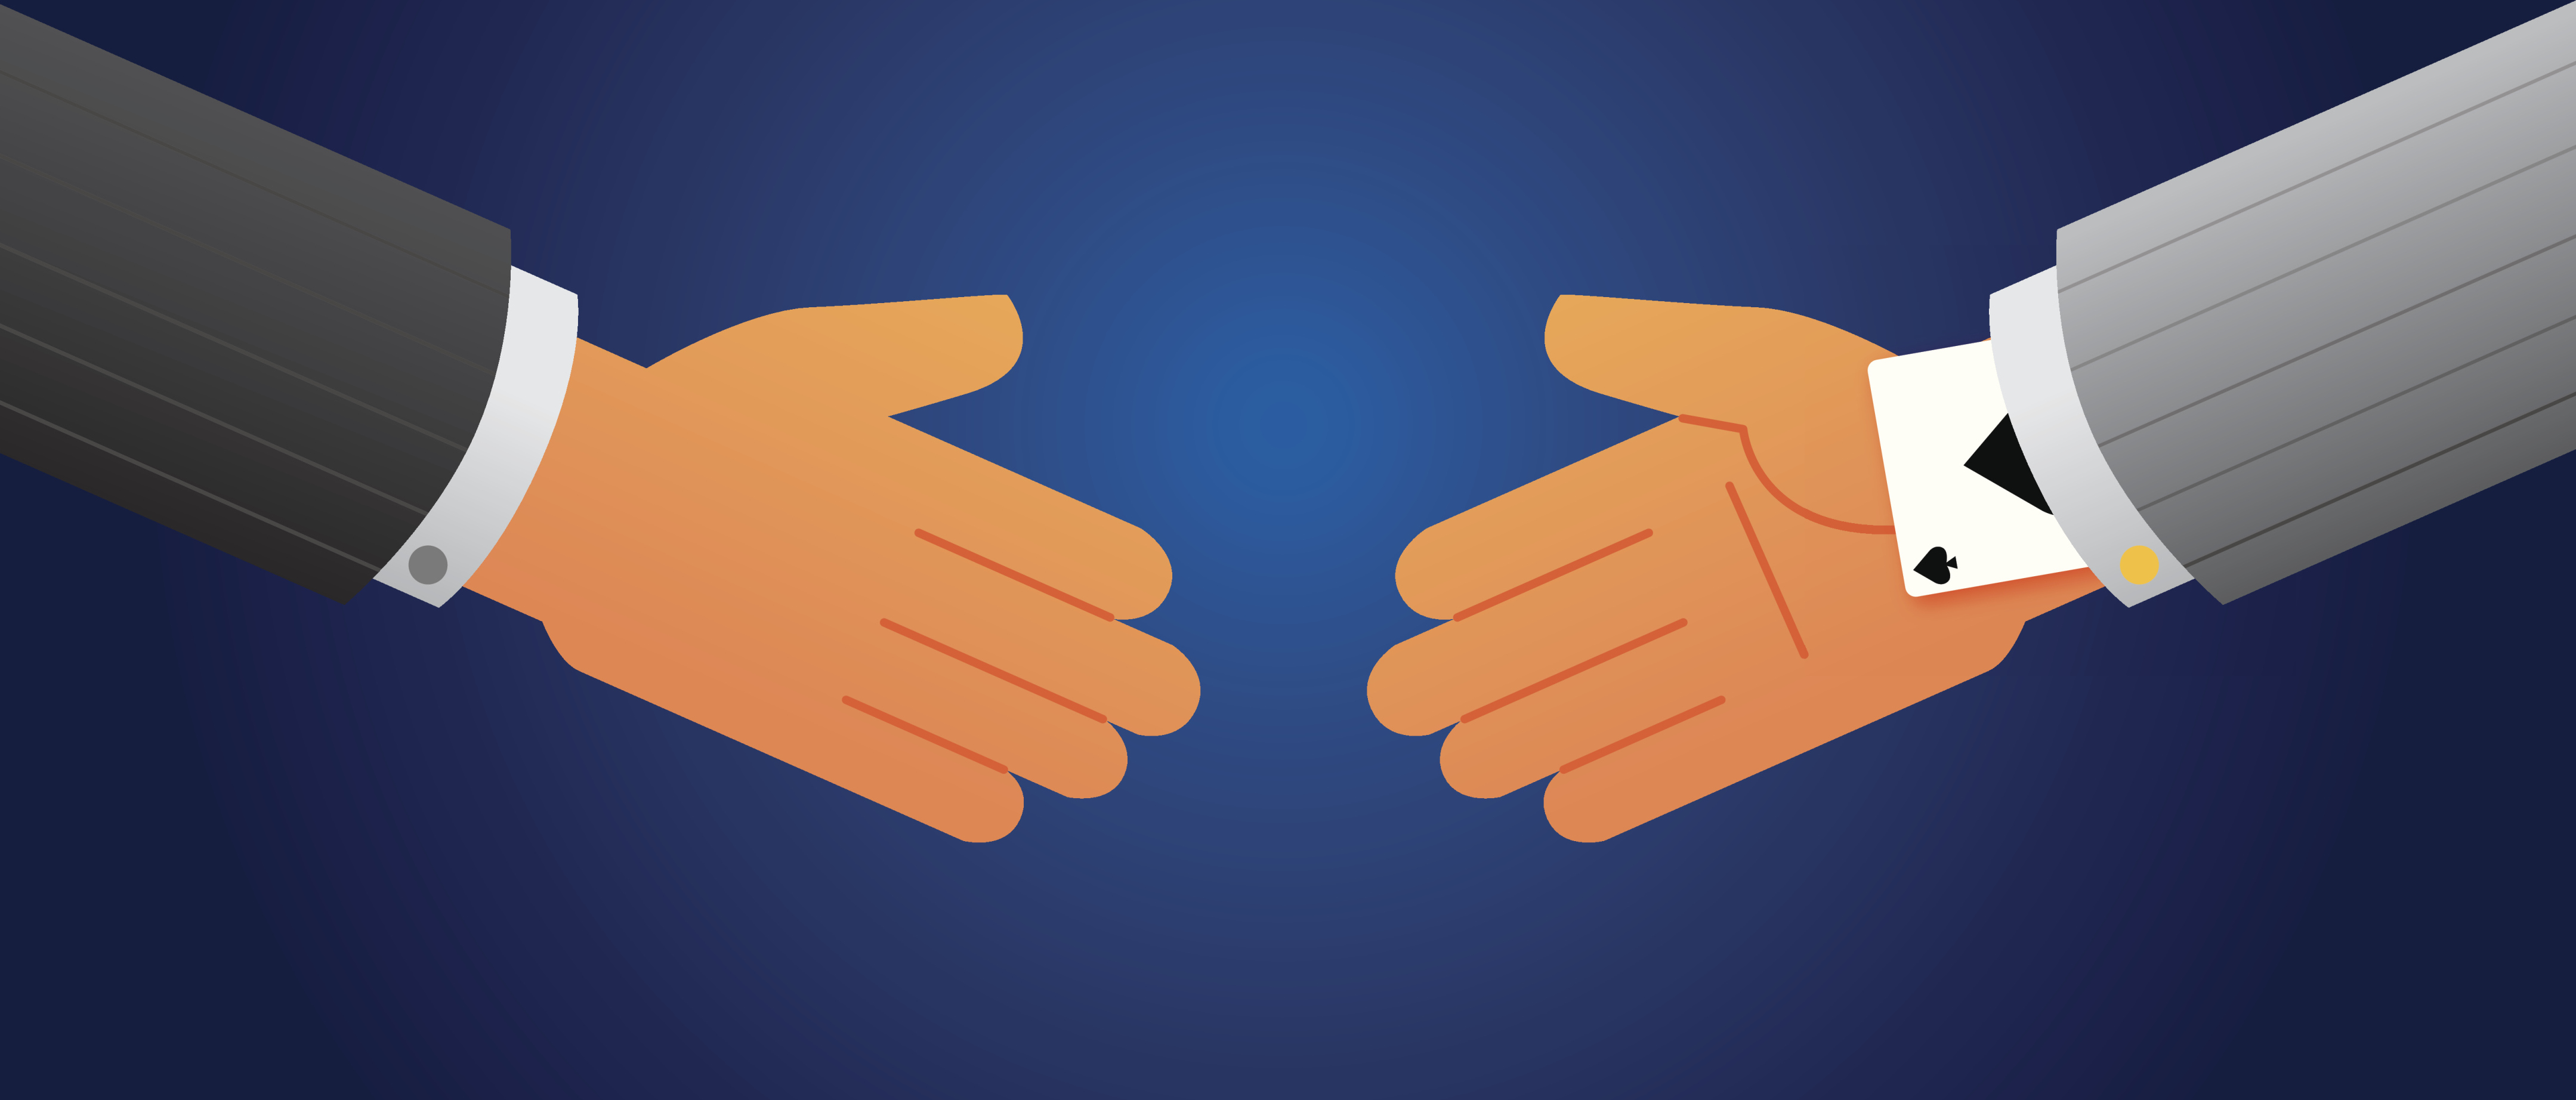 The Ace Up Your Sleeve: 6 Proven Methods of Persuasion | Ethos3 - A Presentation Design Agency